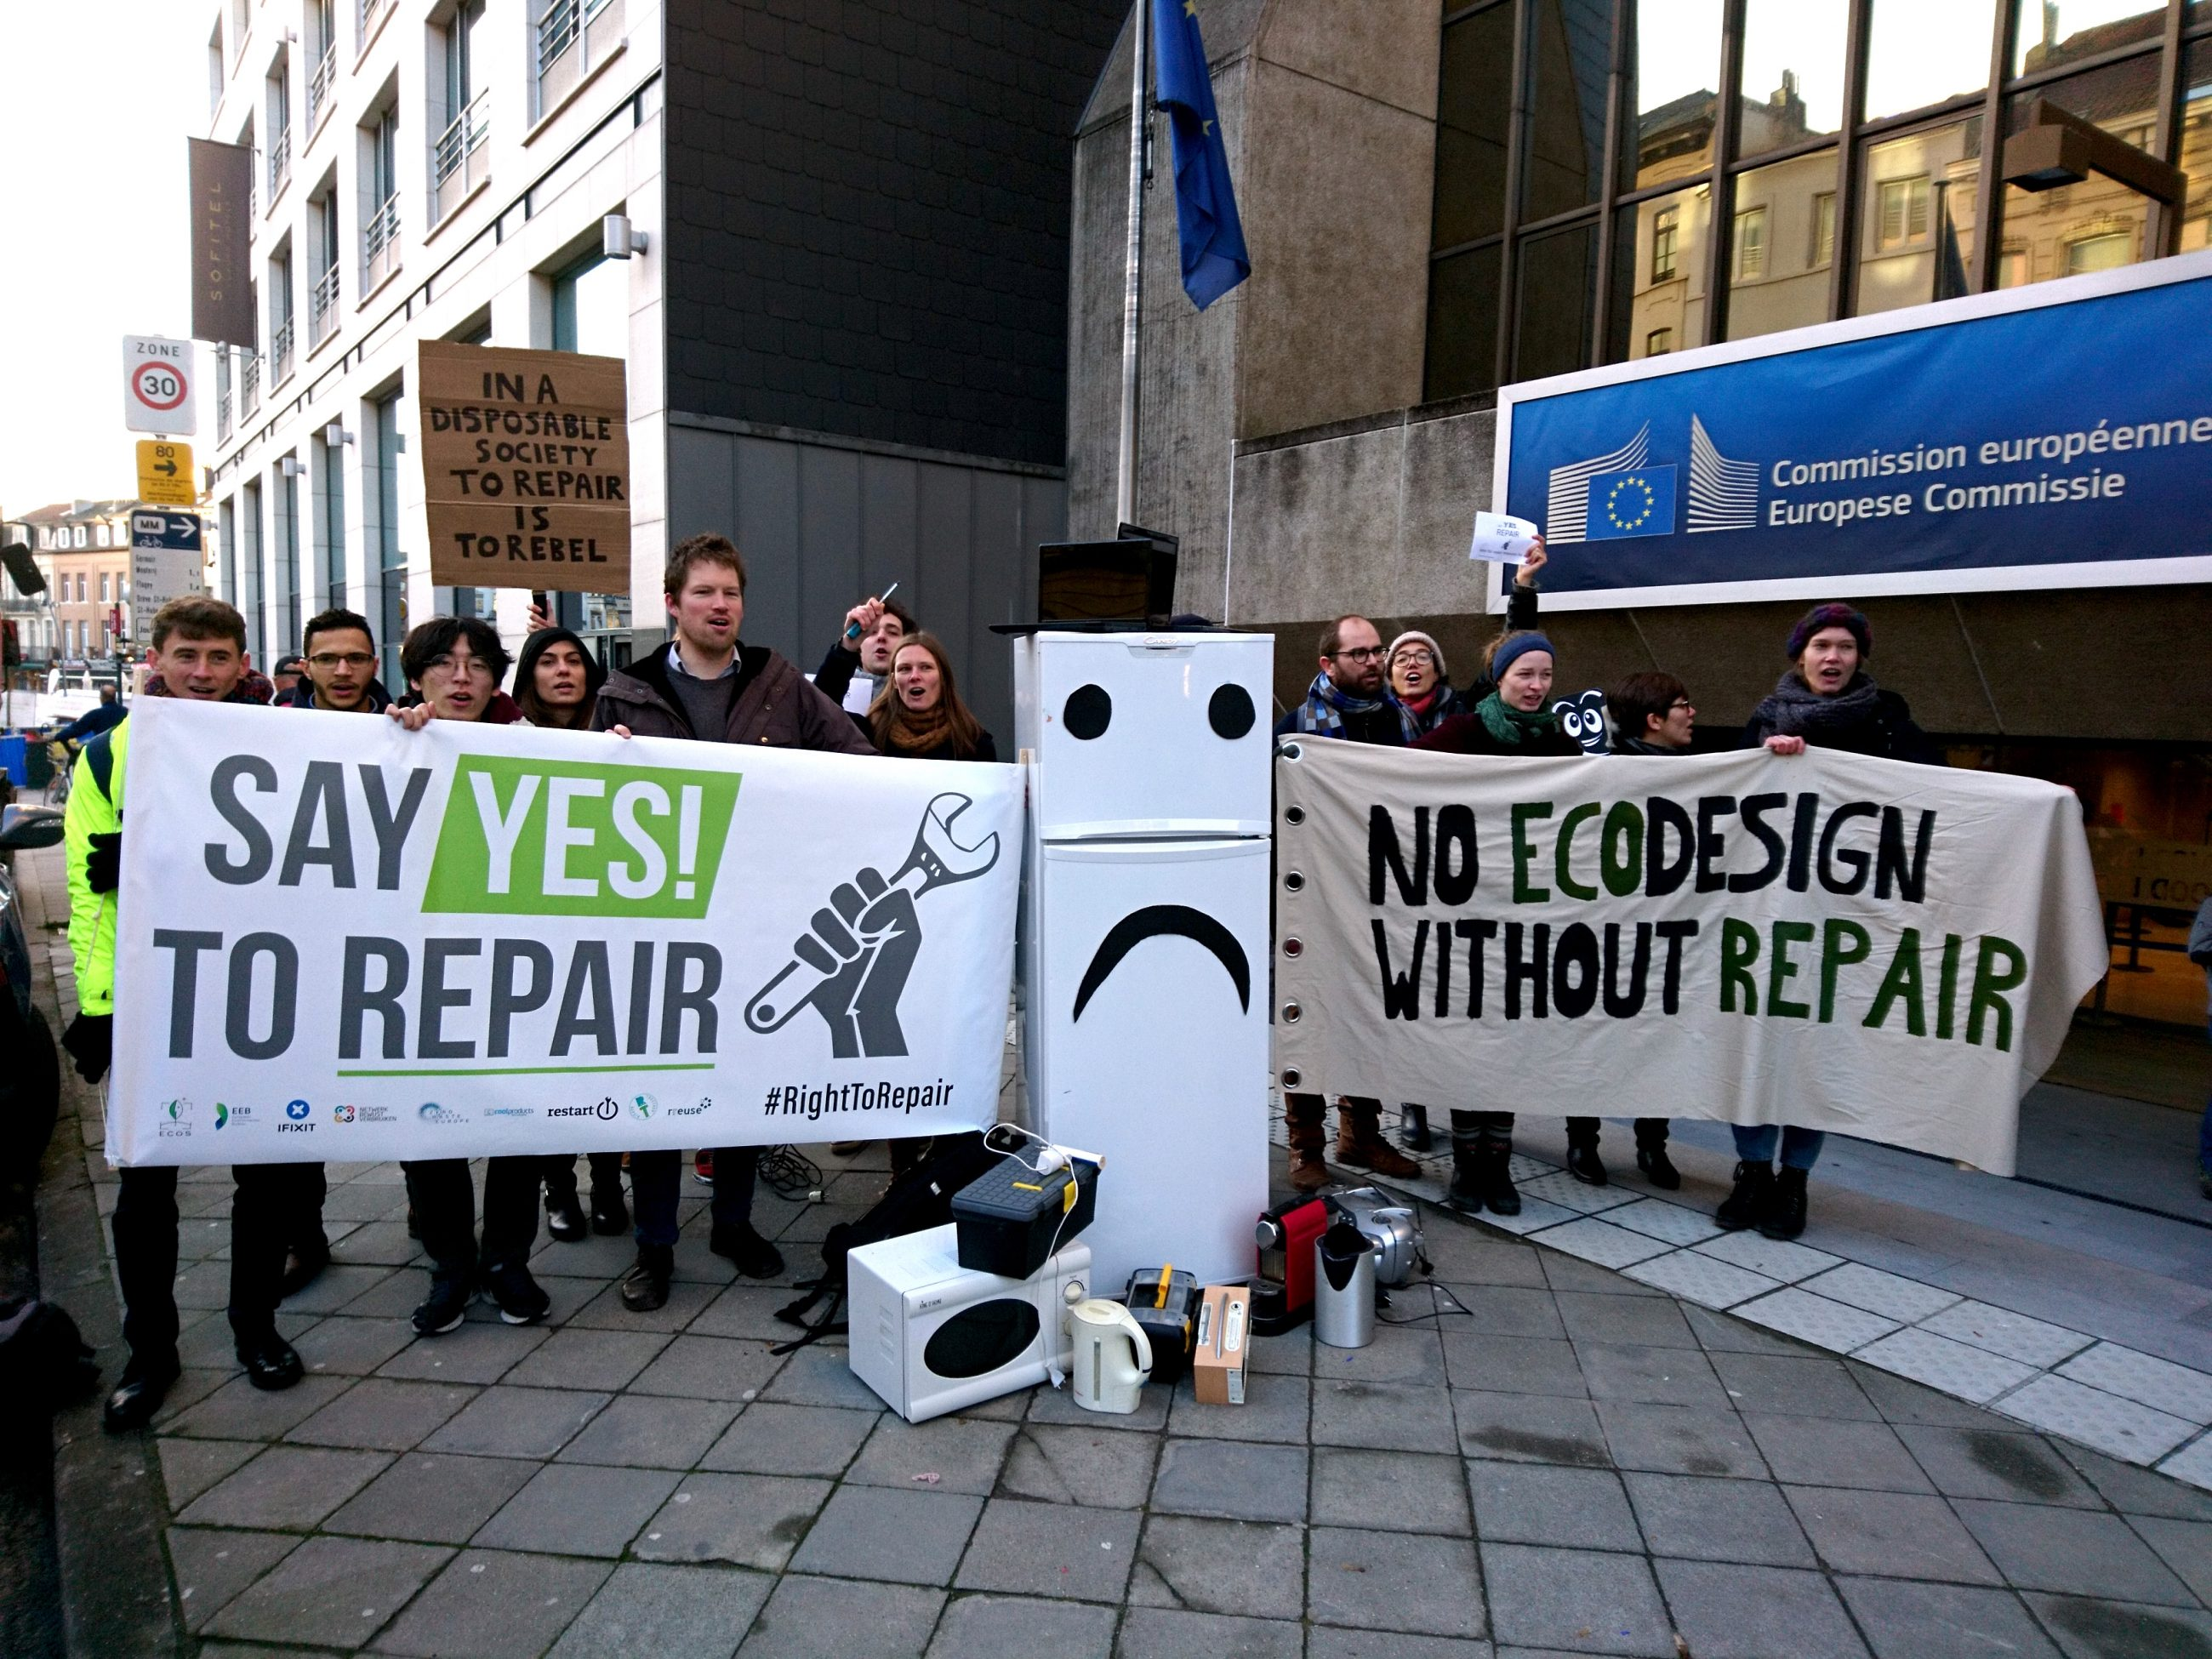 We believe in the right to repair